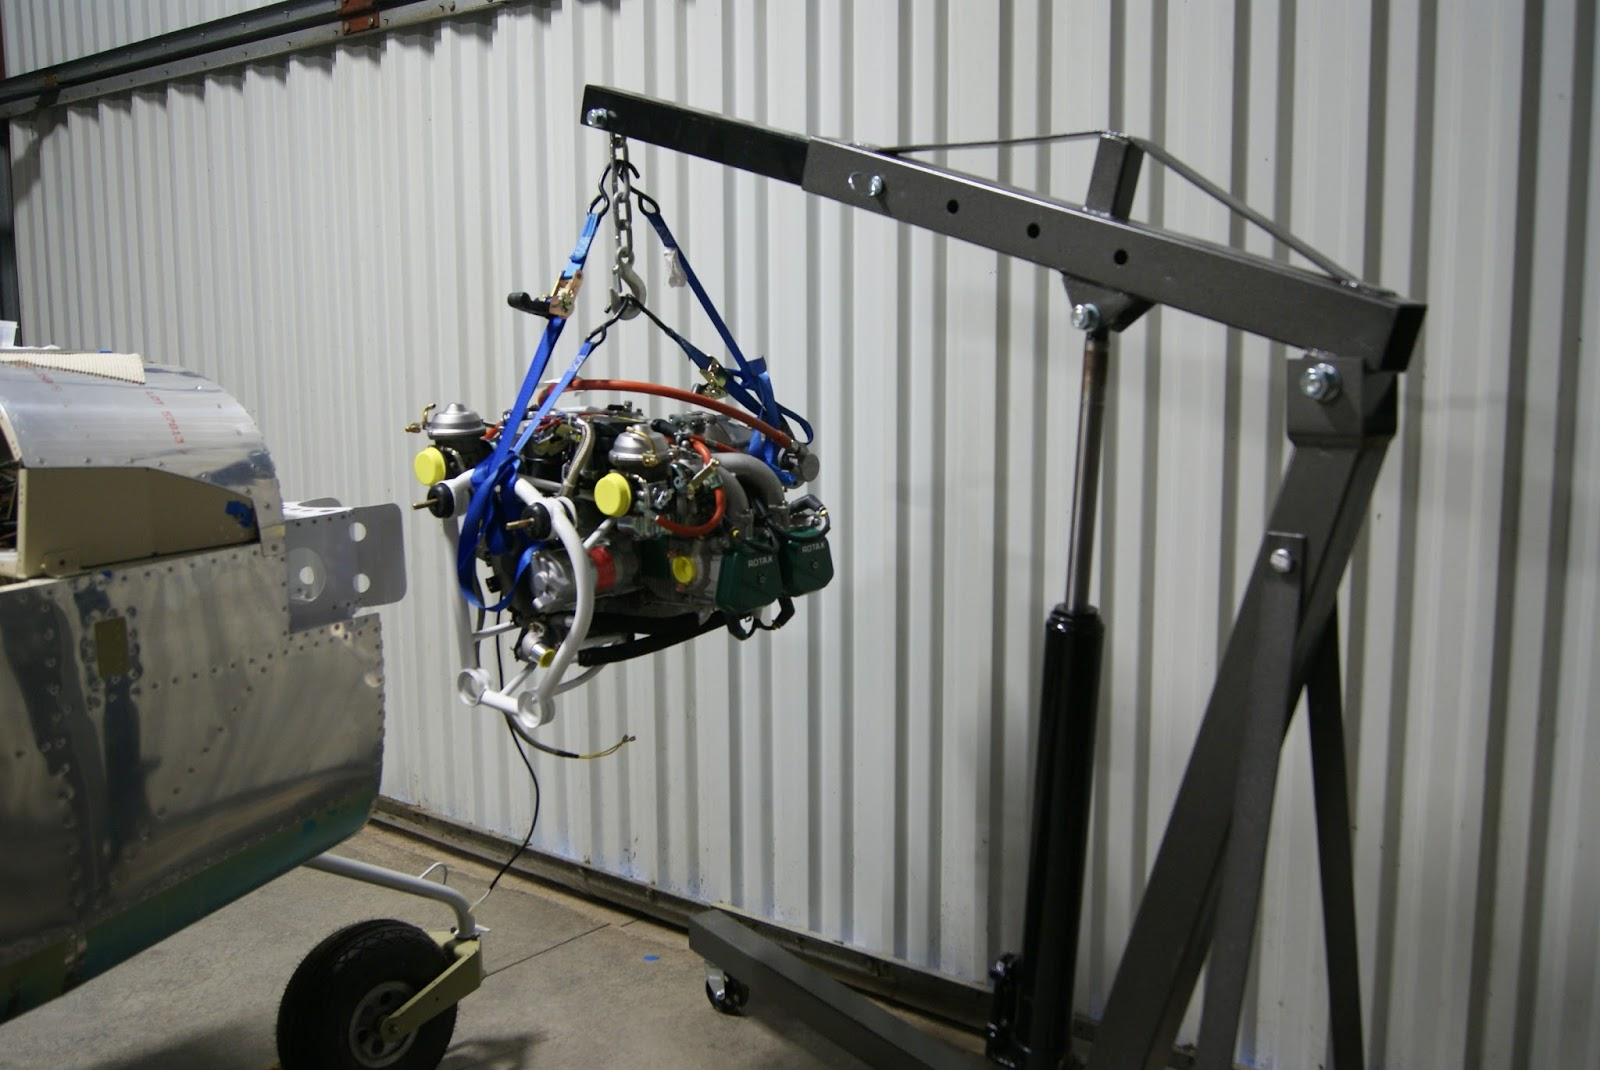 ROTAX 912 ULS ENGINE MOUNTING COMPLETED!!! | Article - Fri